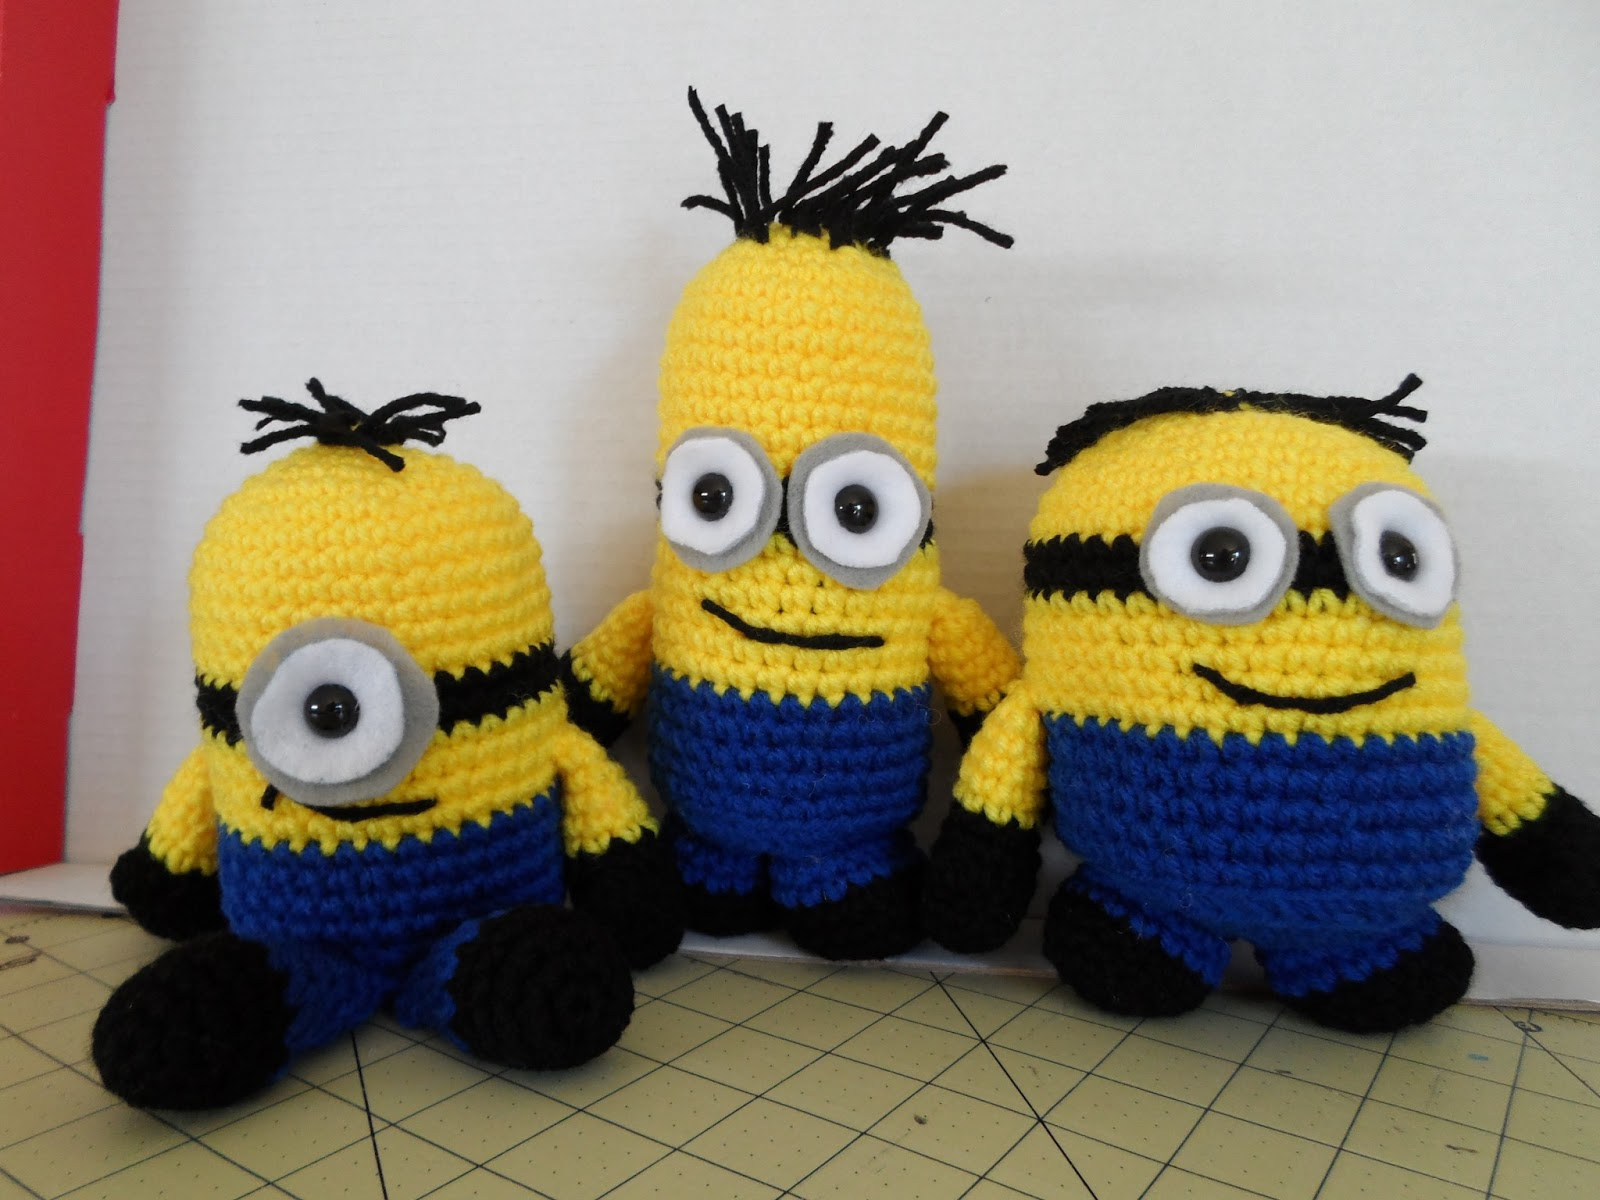 Crochet Patterns Minions : Kristens Crochet: Minion Inspired Crochet Softie